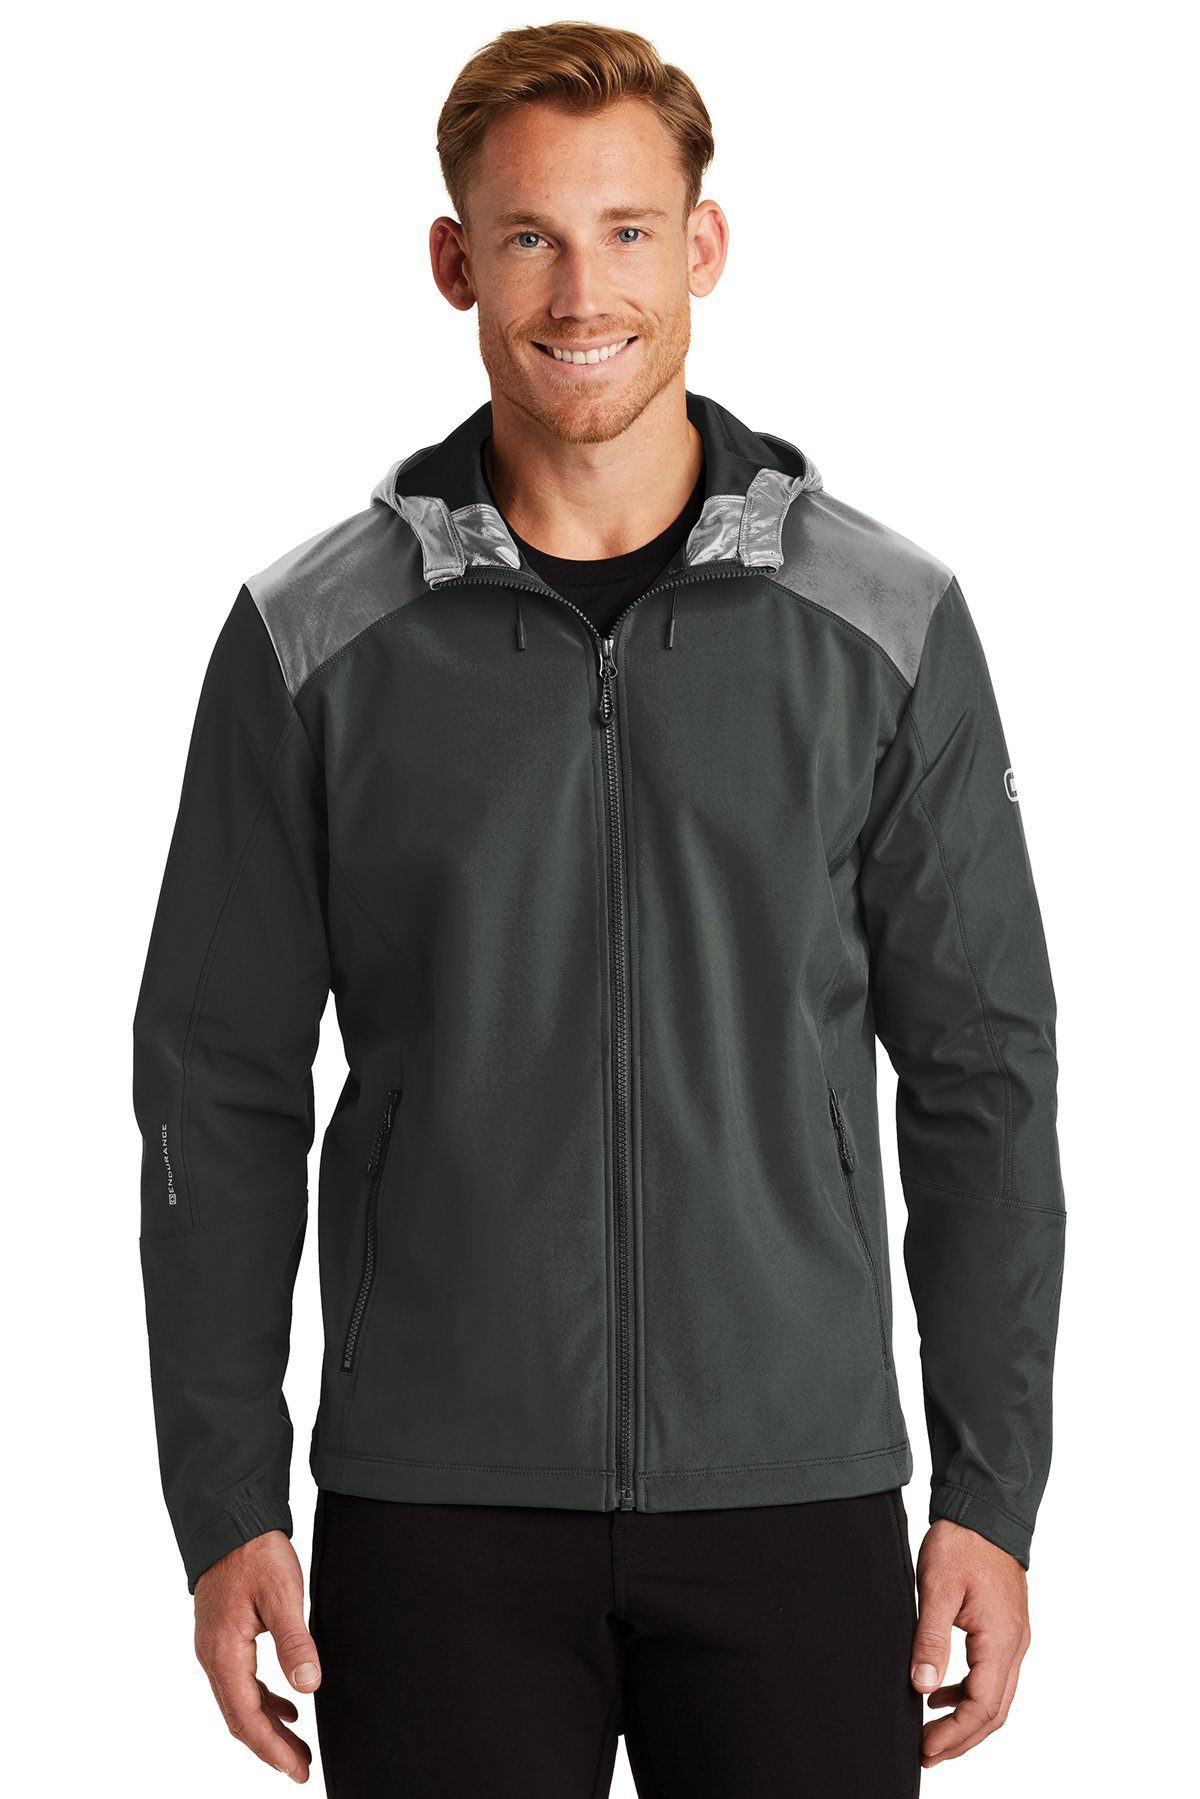 OGIO ENDURANCE OE723 - Men's Liquid Jacket